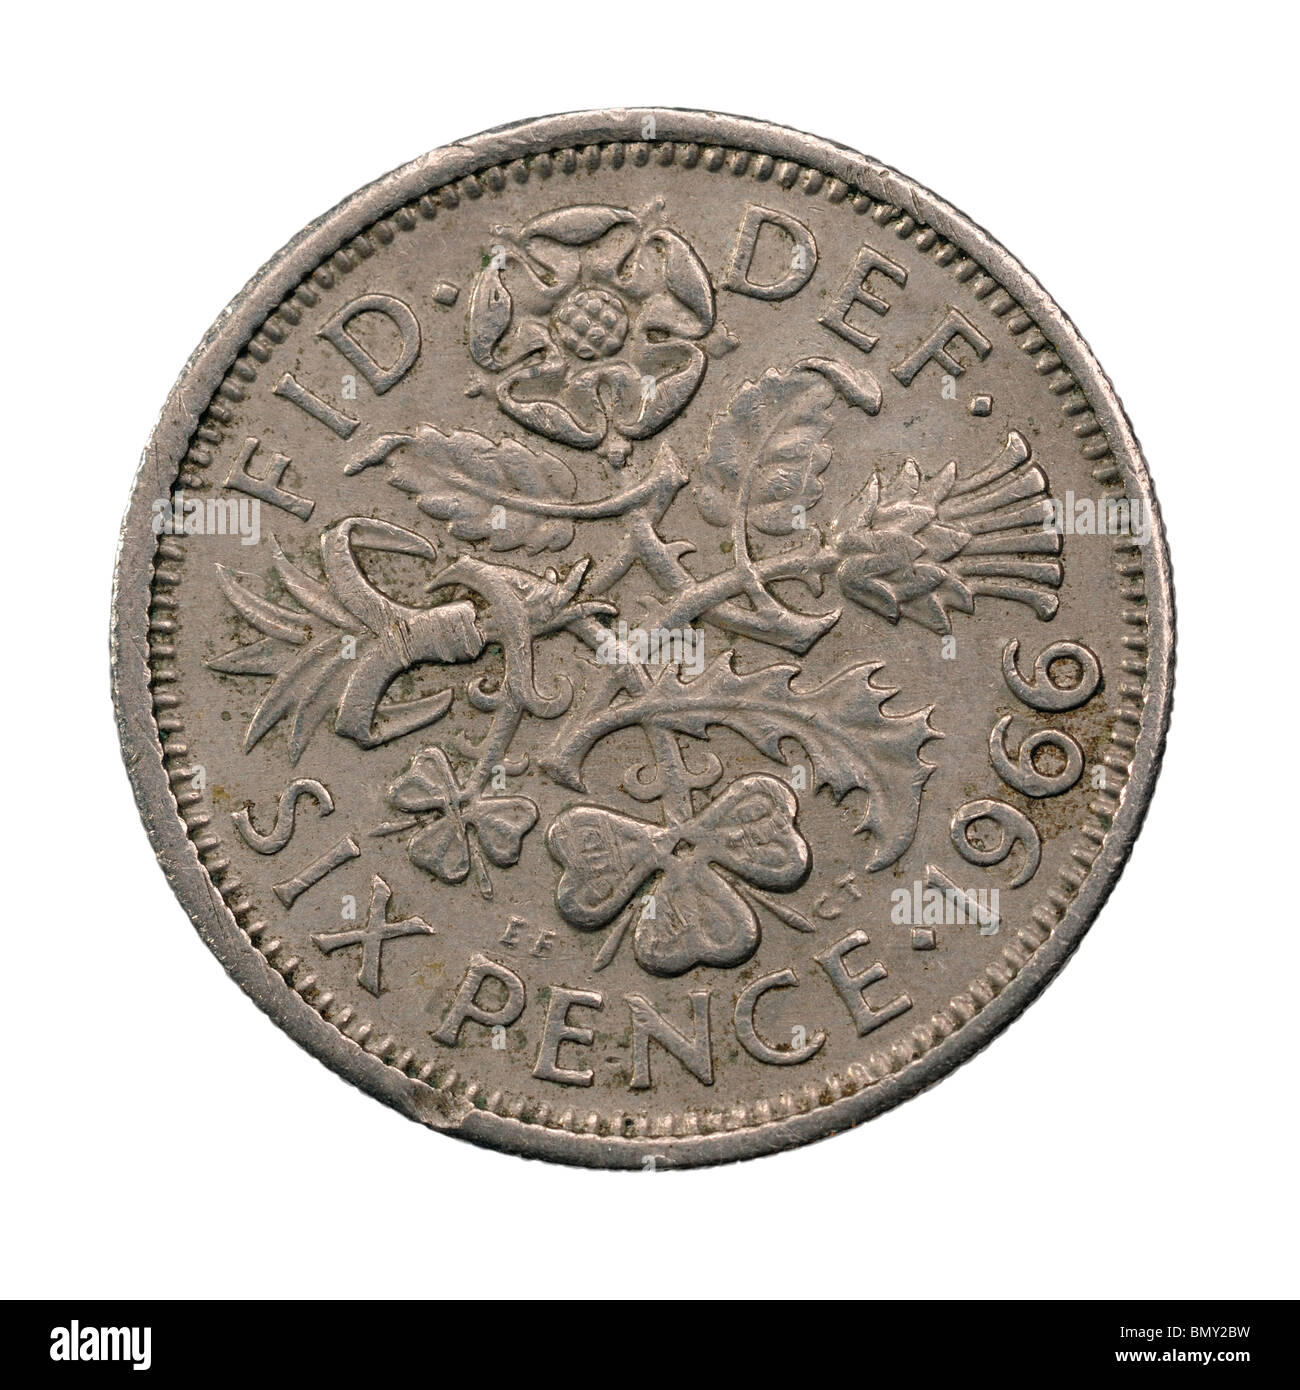 1966 UK Sixpence coin - Stock Image